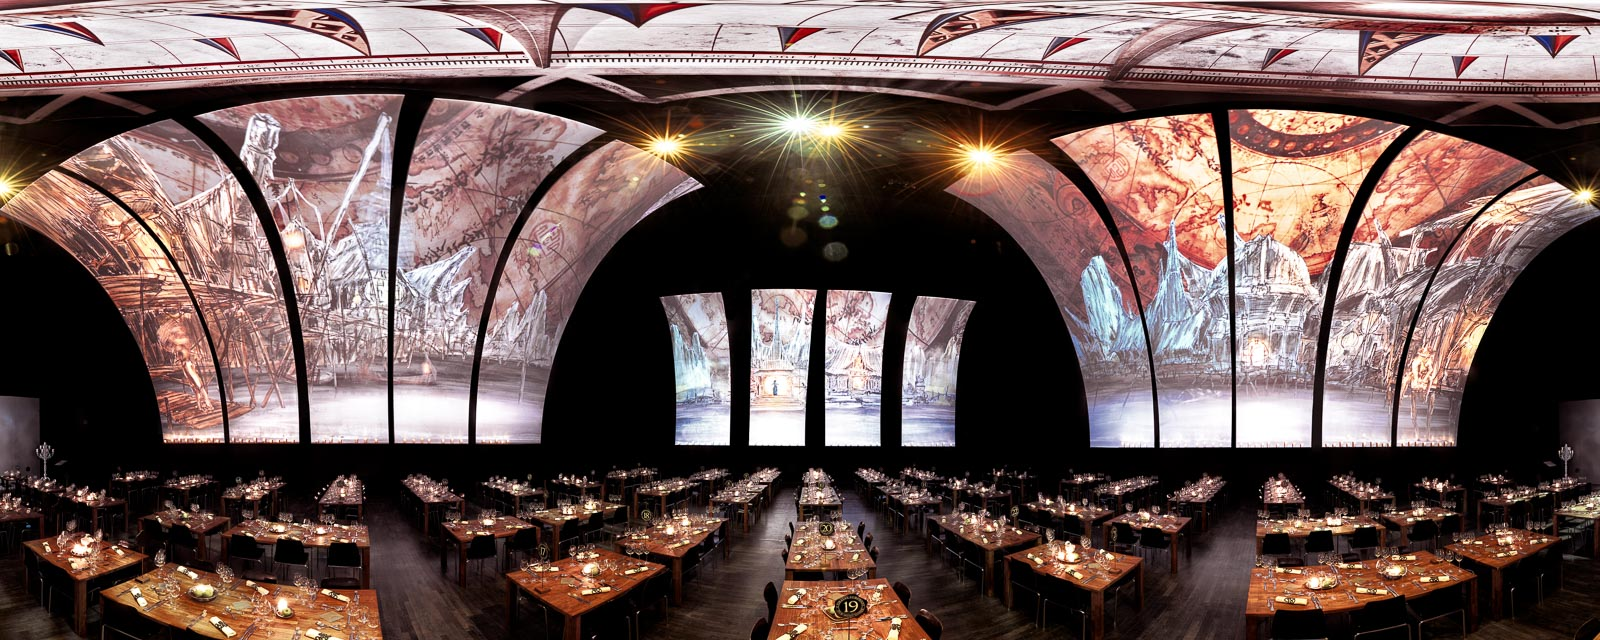 Disney Live in Concert - Pirates of the Caribbean, dine in the decorated Luzernersaal at the KKL Luceren.